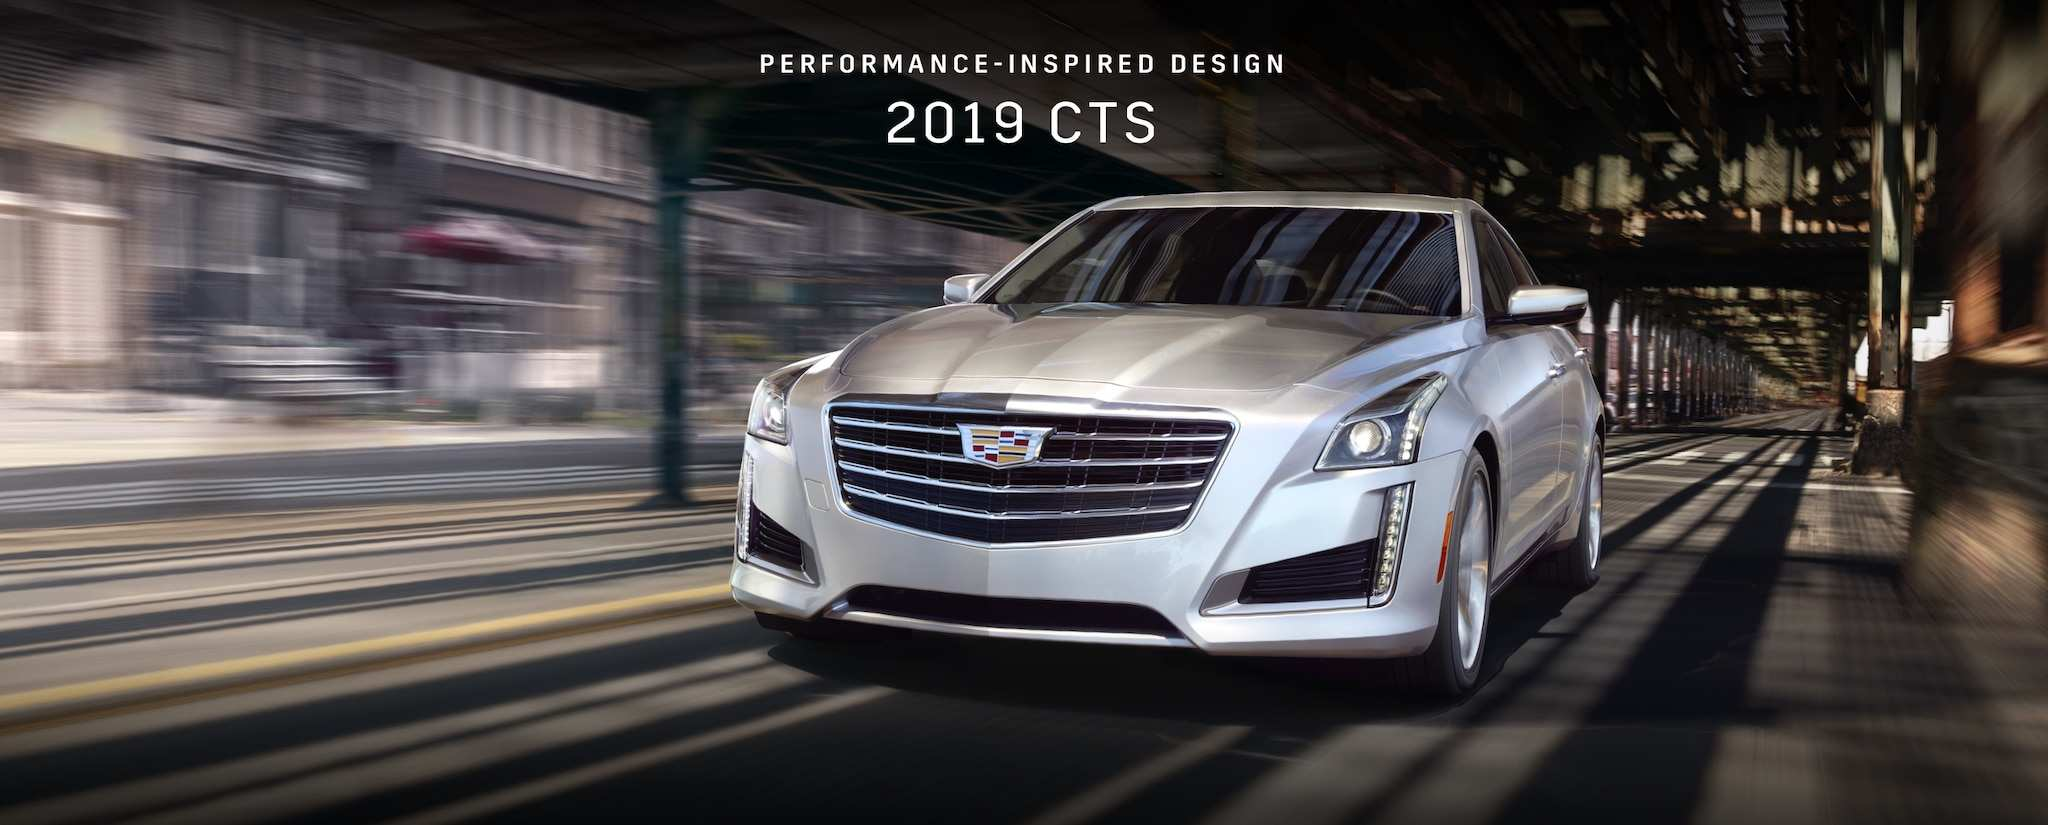 64 Gallery of 2019 Cadillac Dts Research New with 2019 Cadillac Dts